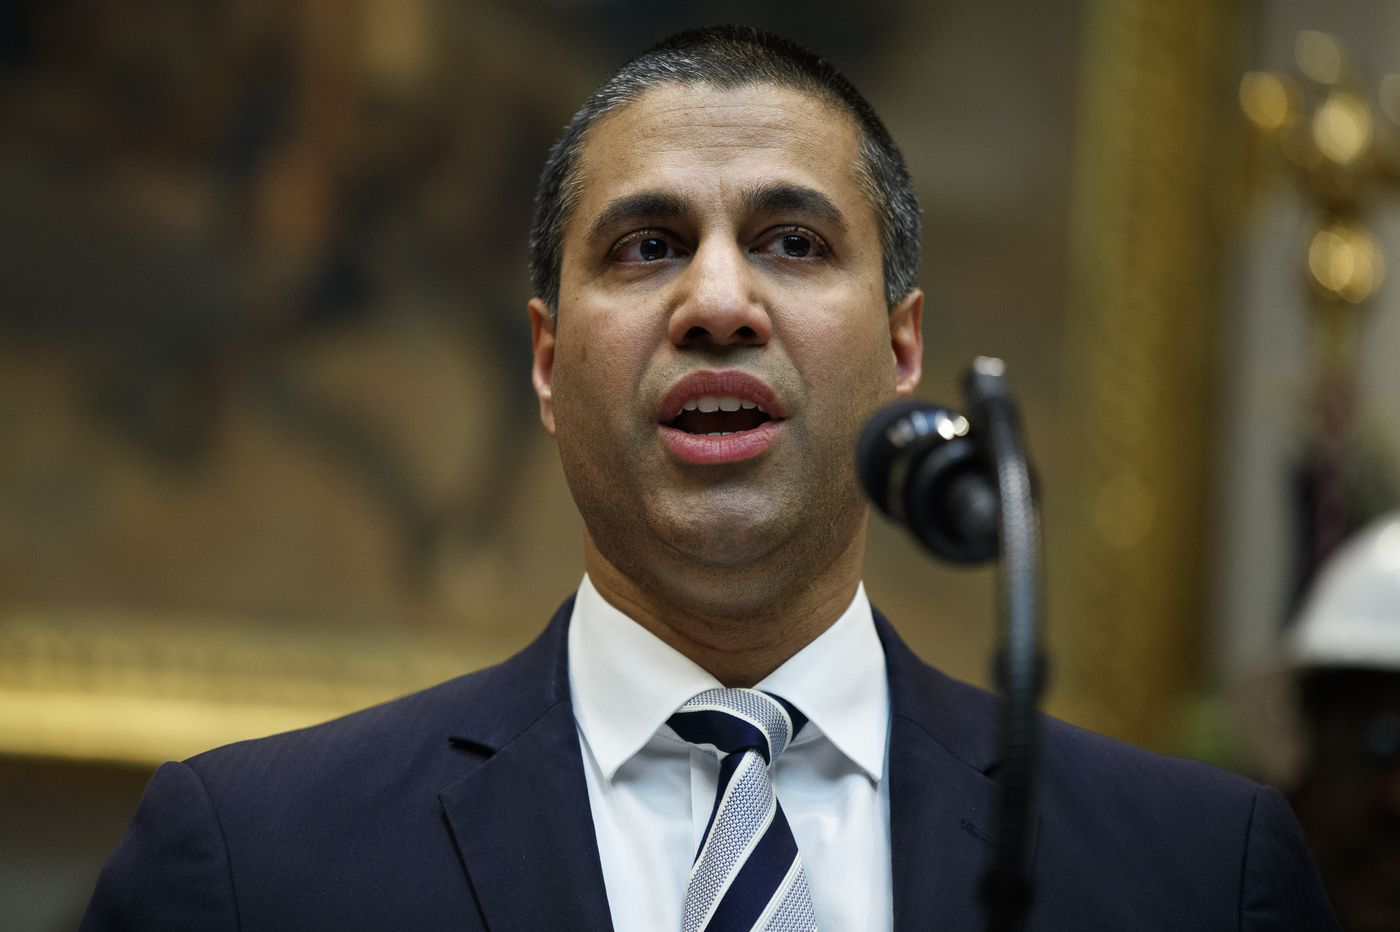 FCC Wants to Give Phone Companies Ability to Block Robocalls by Default